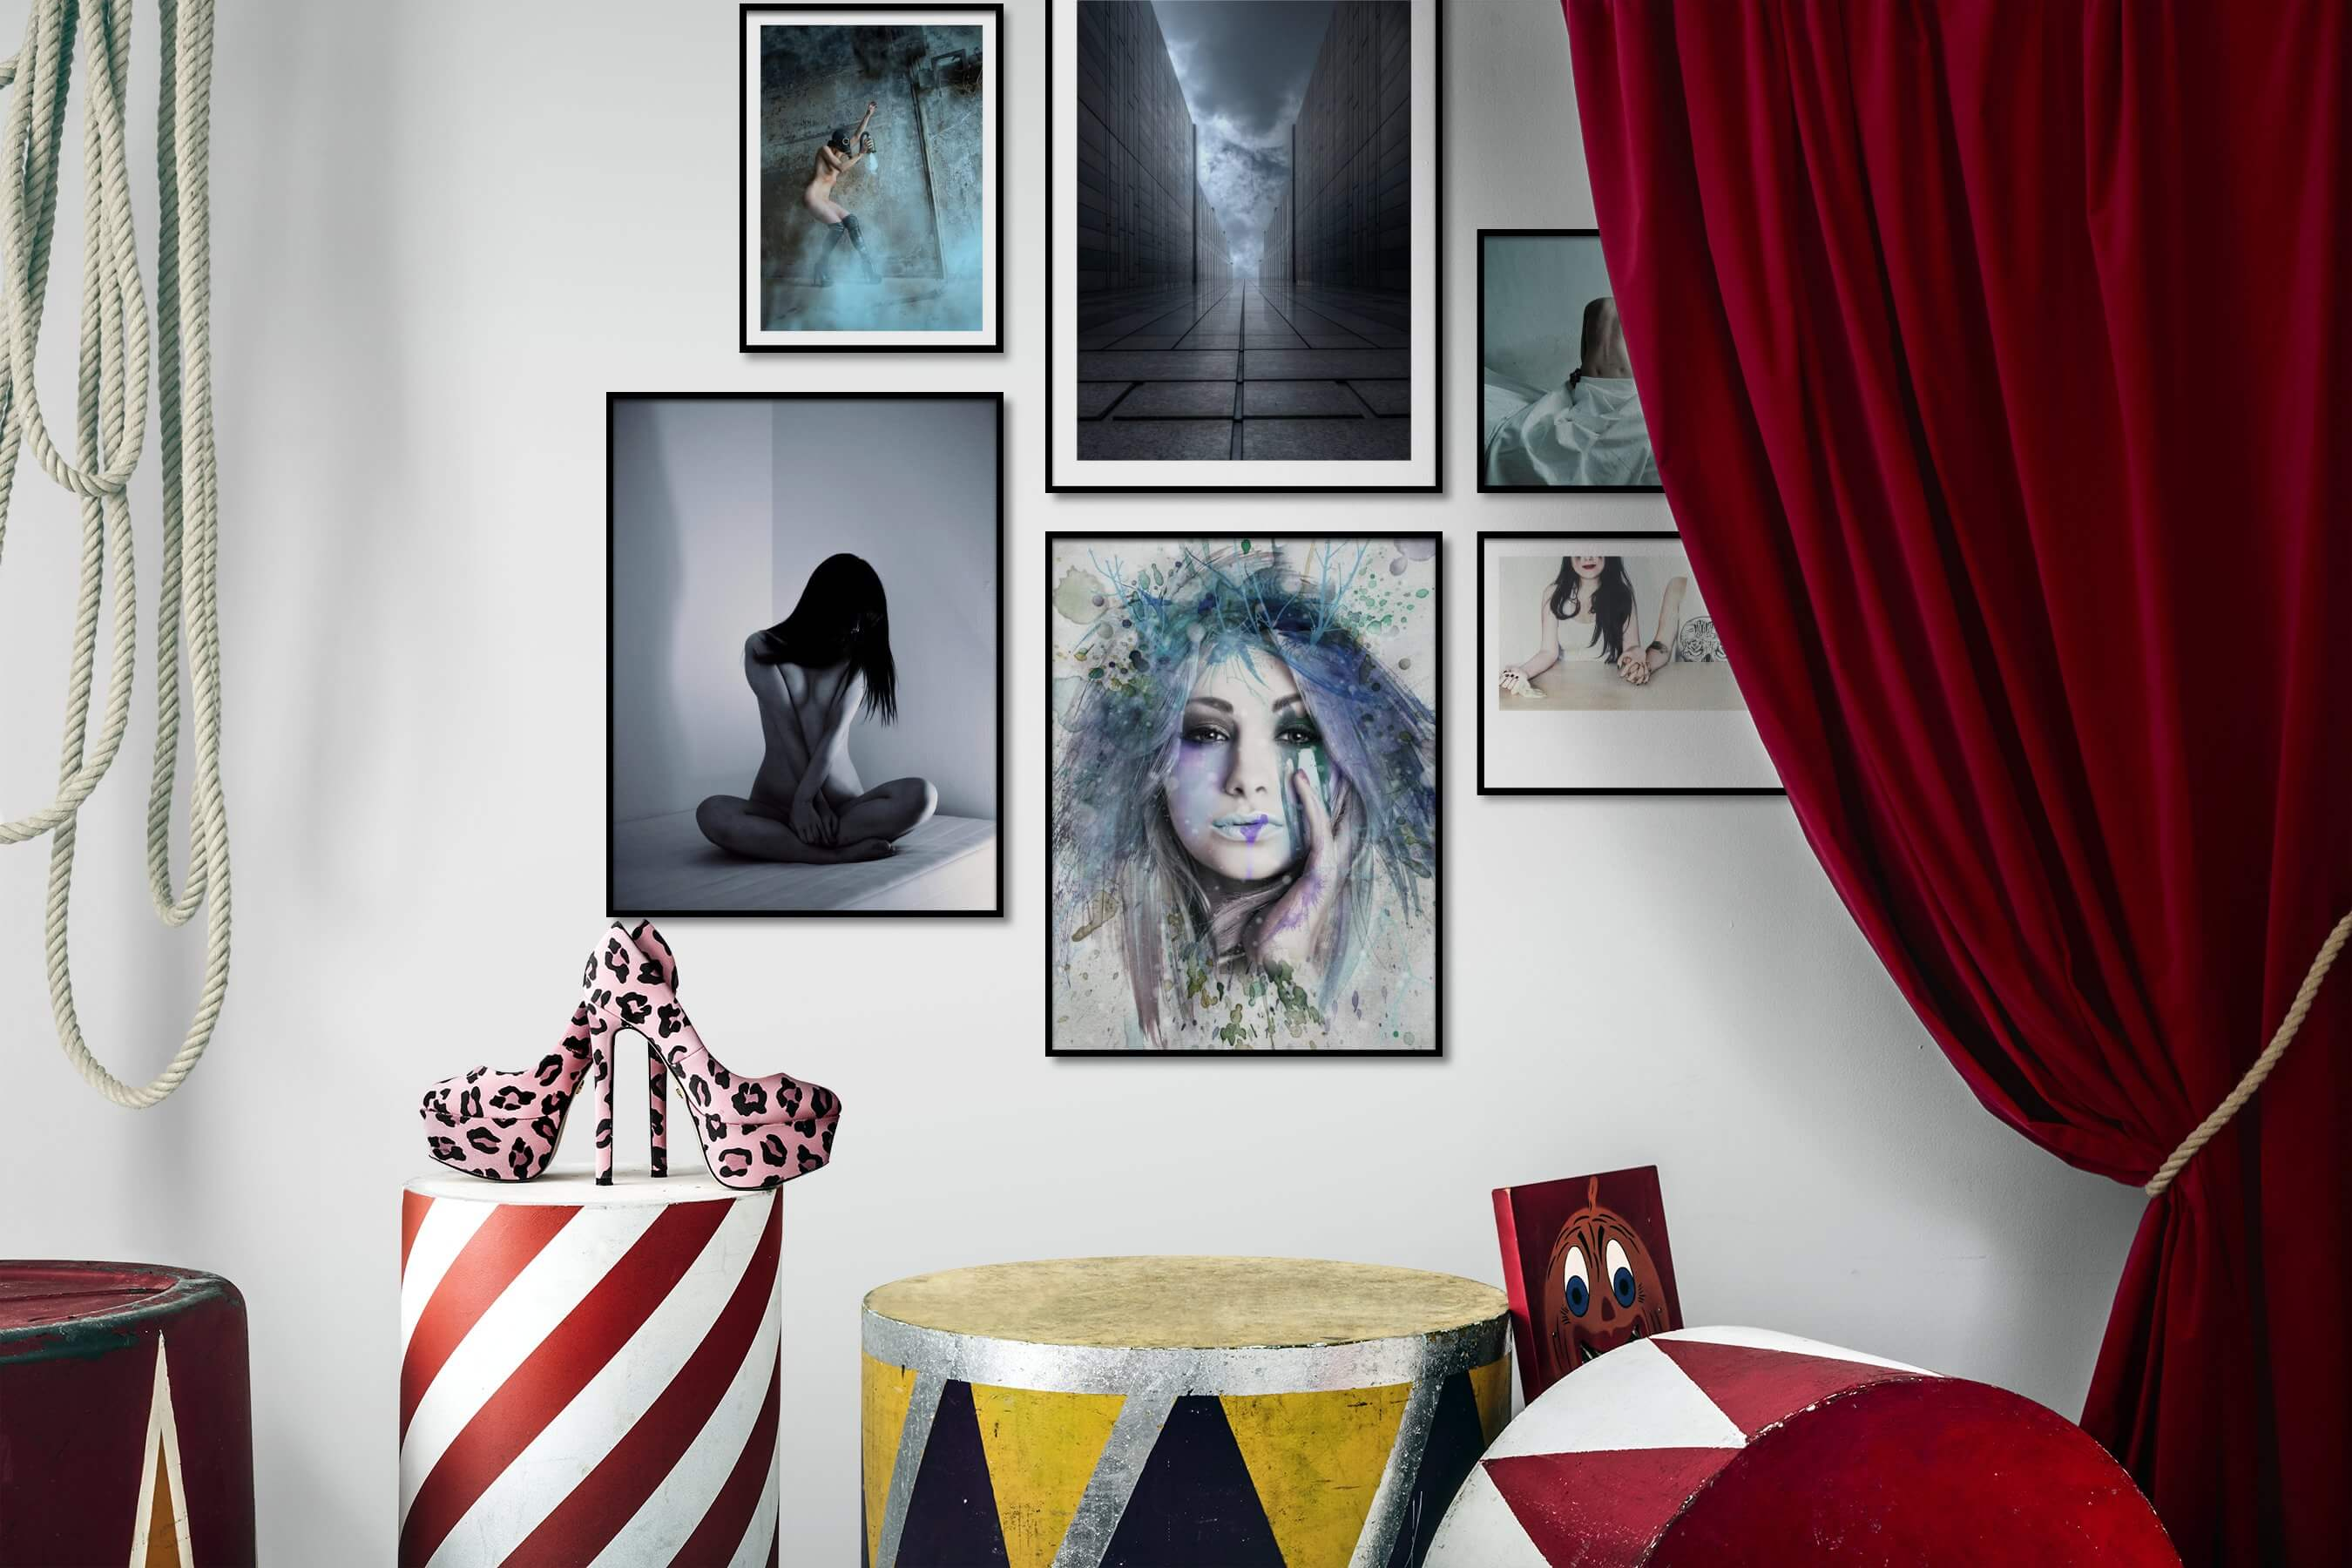 Gallery wall idea with six framed pictures arranged on a wall depicting Artsy, Bold, For the Moderate, Fashion & Beauty, and Black & White